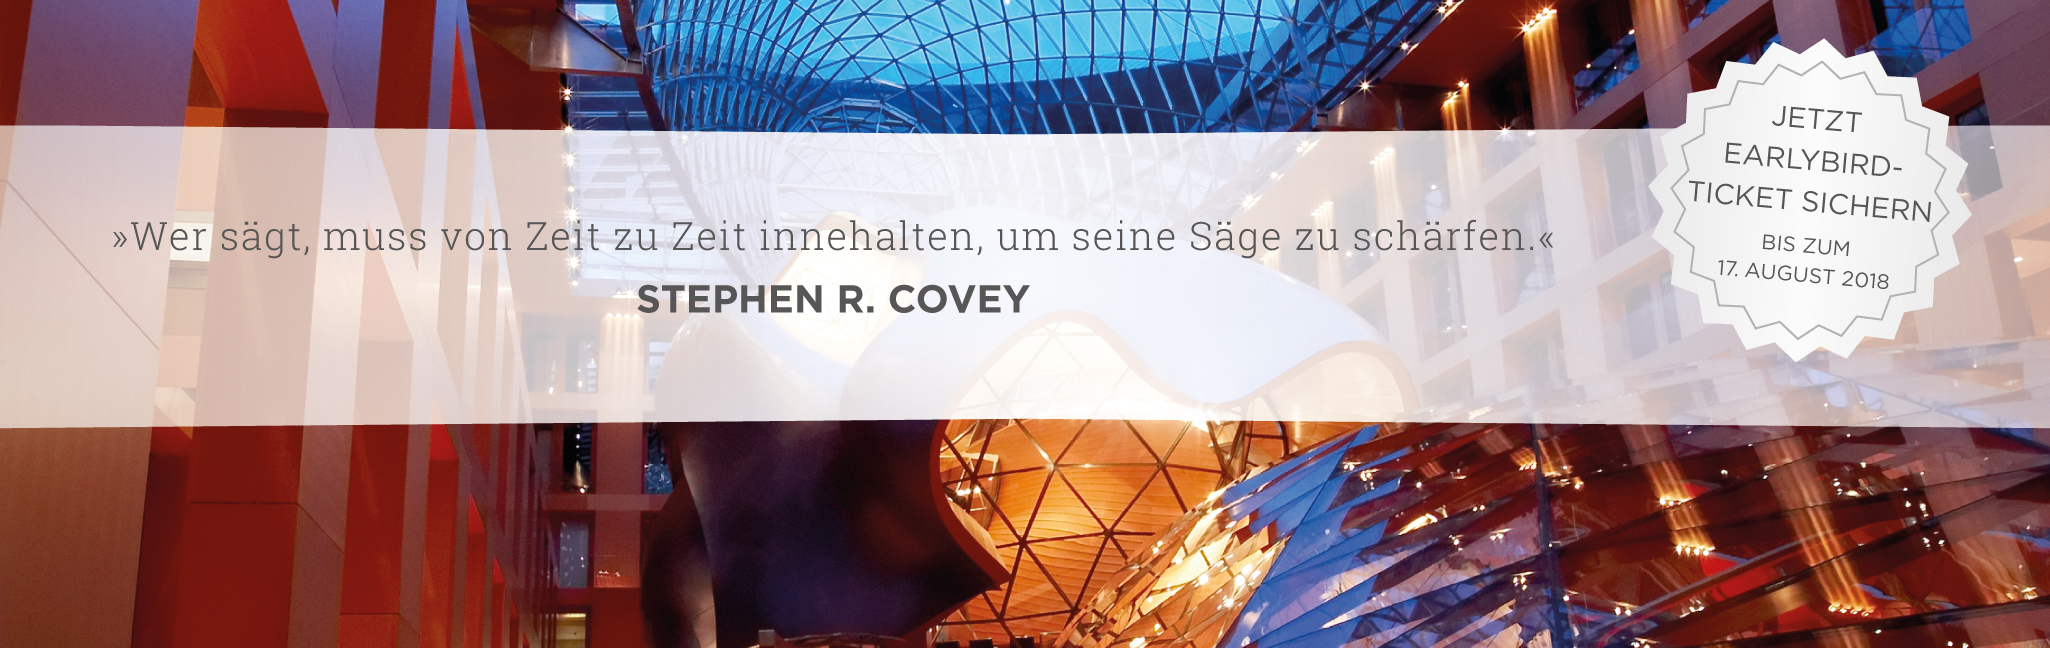 covey berlin xing banner 04